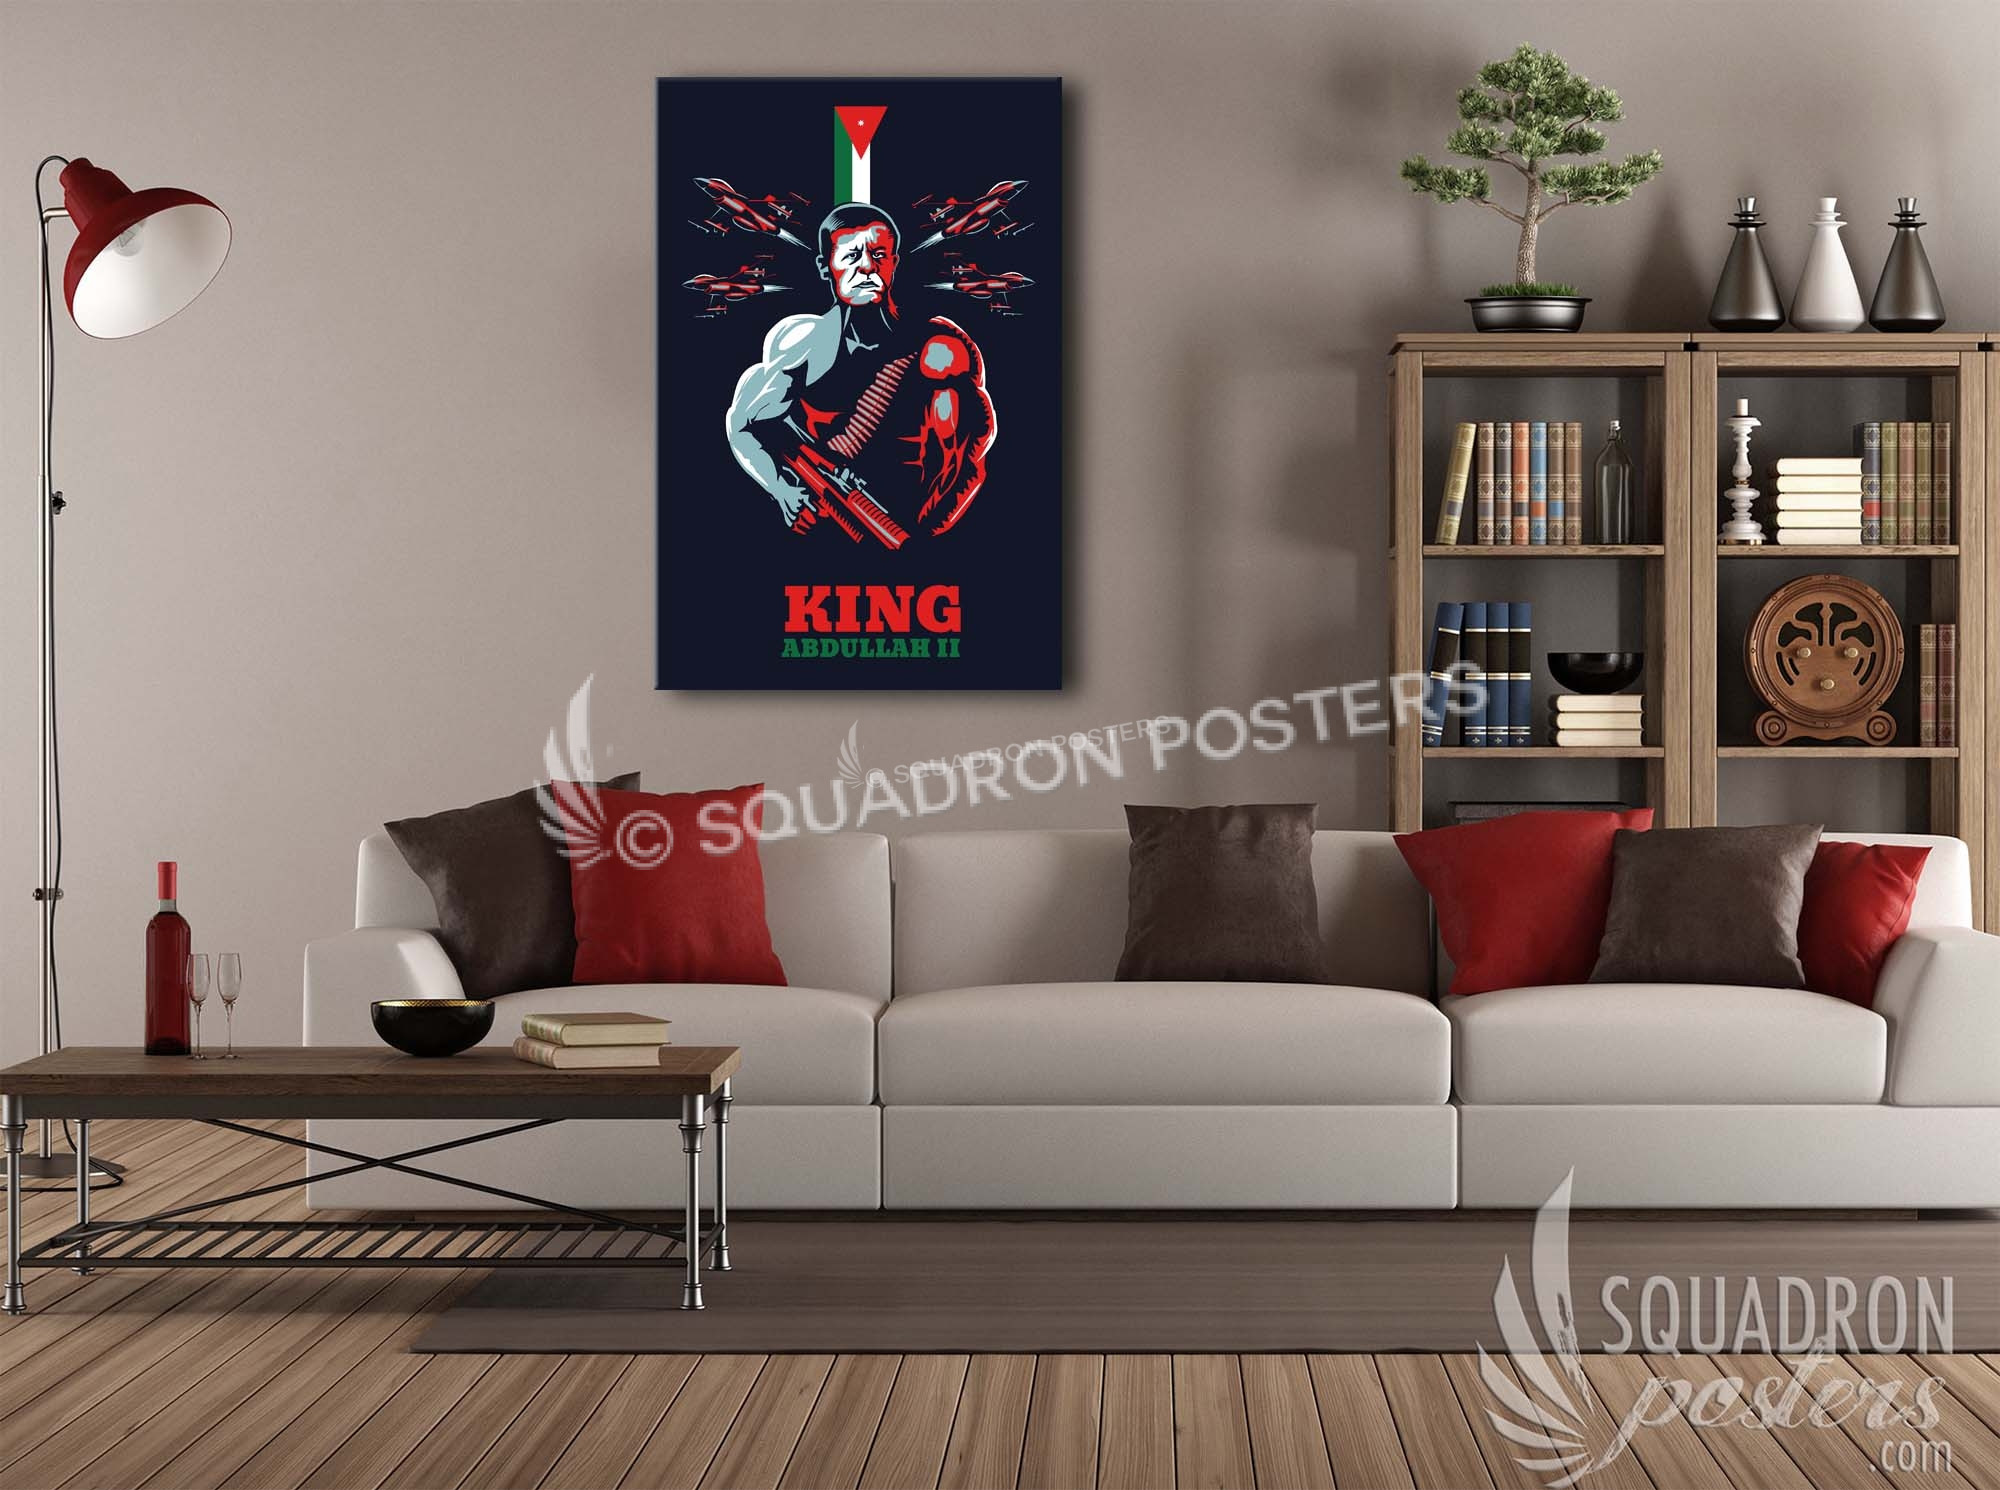 king abdullah ii poster squadron posters